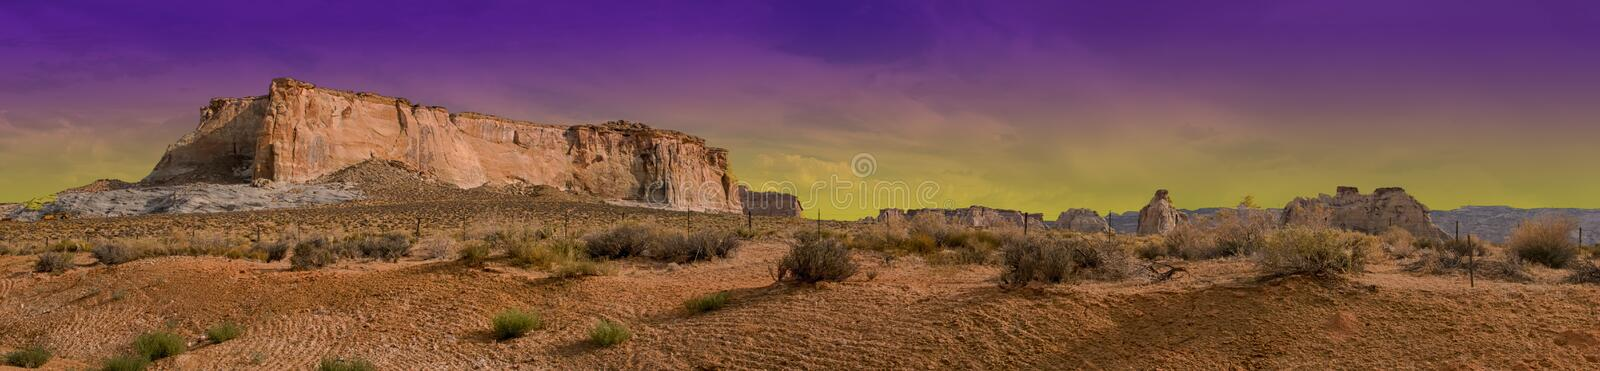 Glen Canyon Arizona Desert Purple Haze Sky royalty free stock image